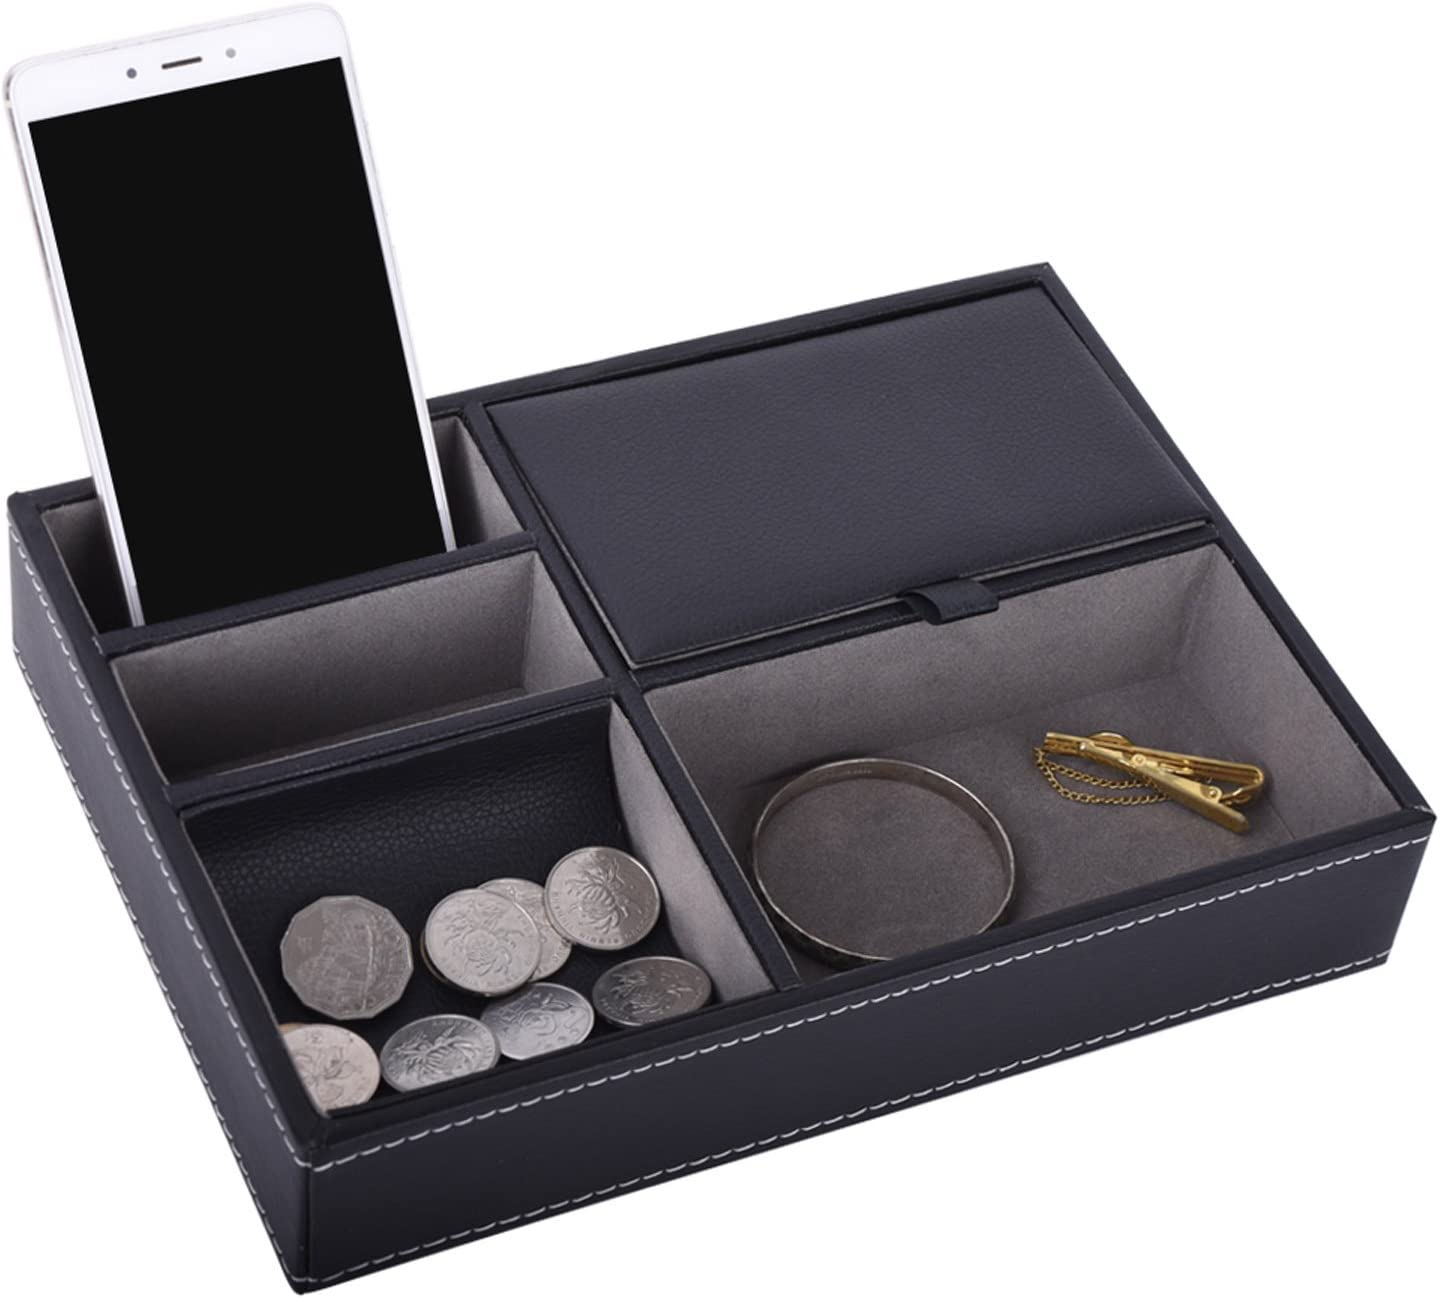 AUTOARK Leather 5 Compartments Valet Tray – Desktop Organizer for Keys,Coins,Wallet,Smartphone,Watches,Sunglasses and Accessories,Black,AW-028